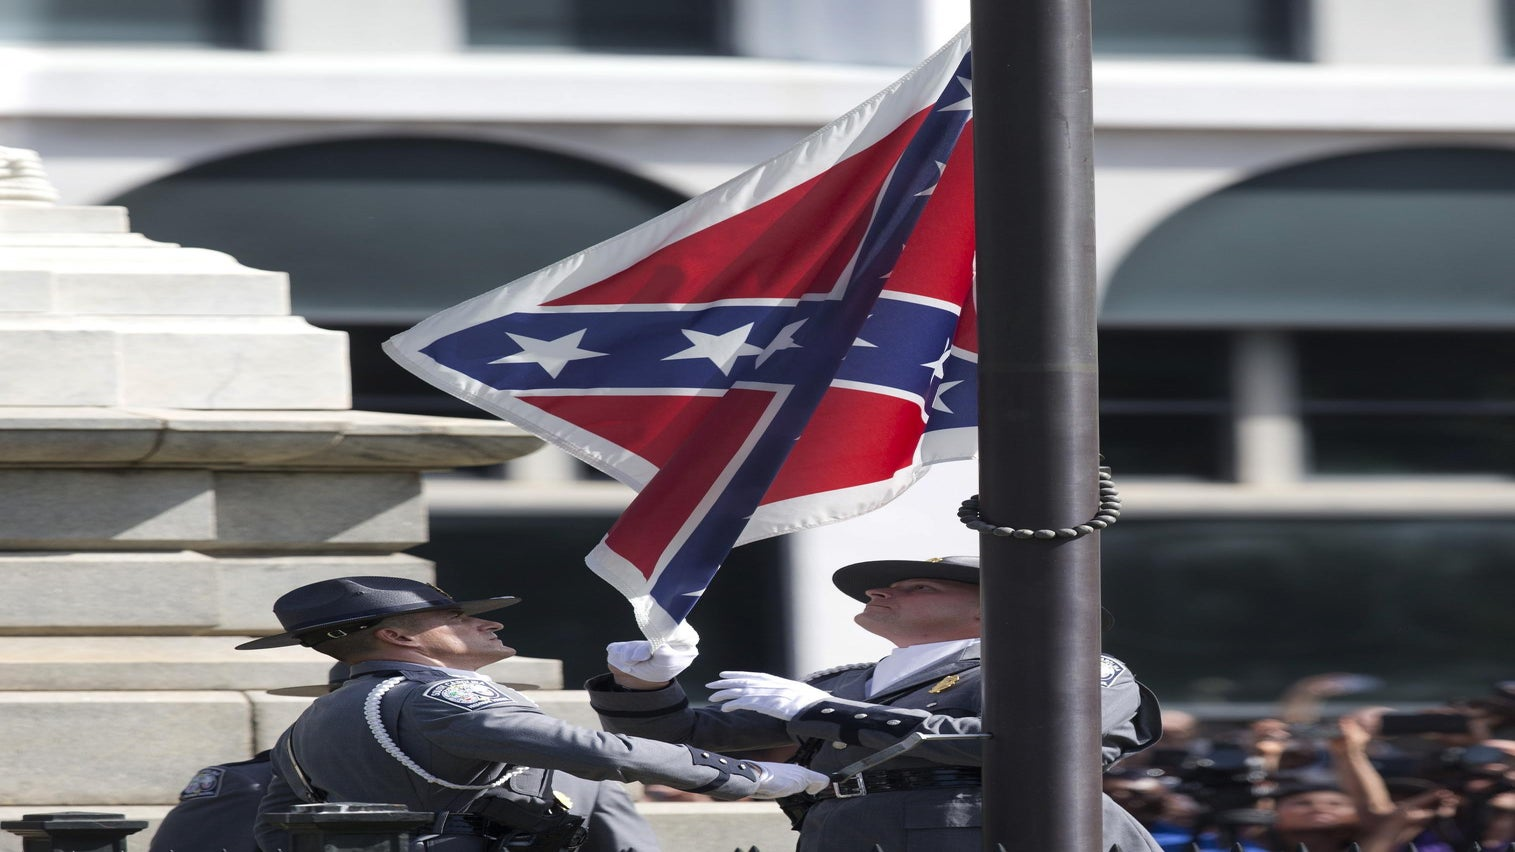 South Carolina Removes the Confederate Flag from State Capital